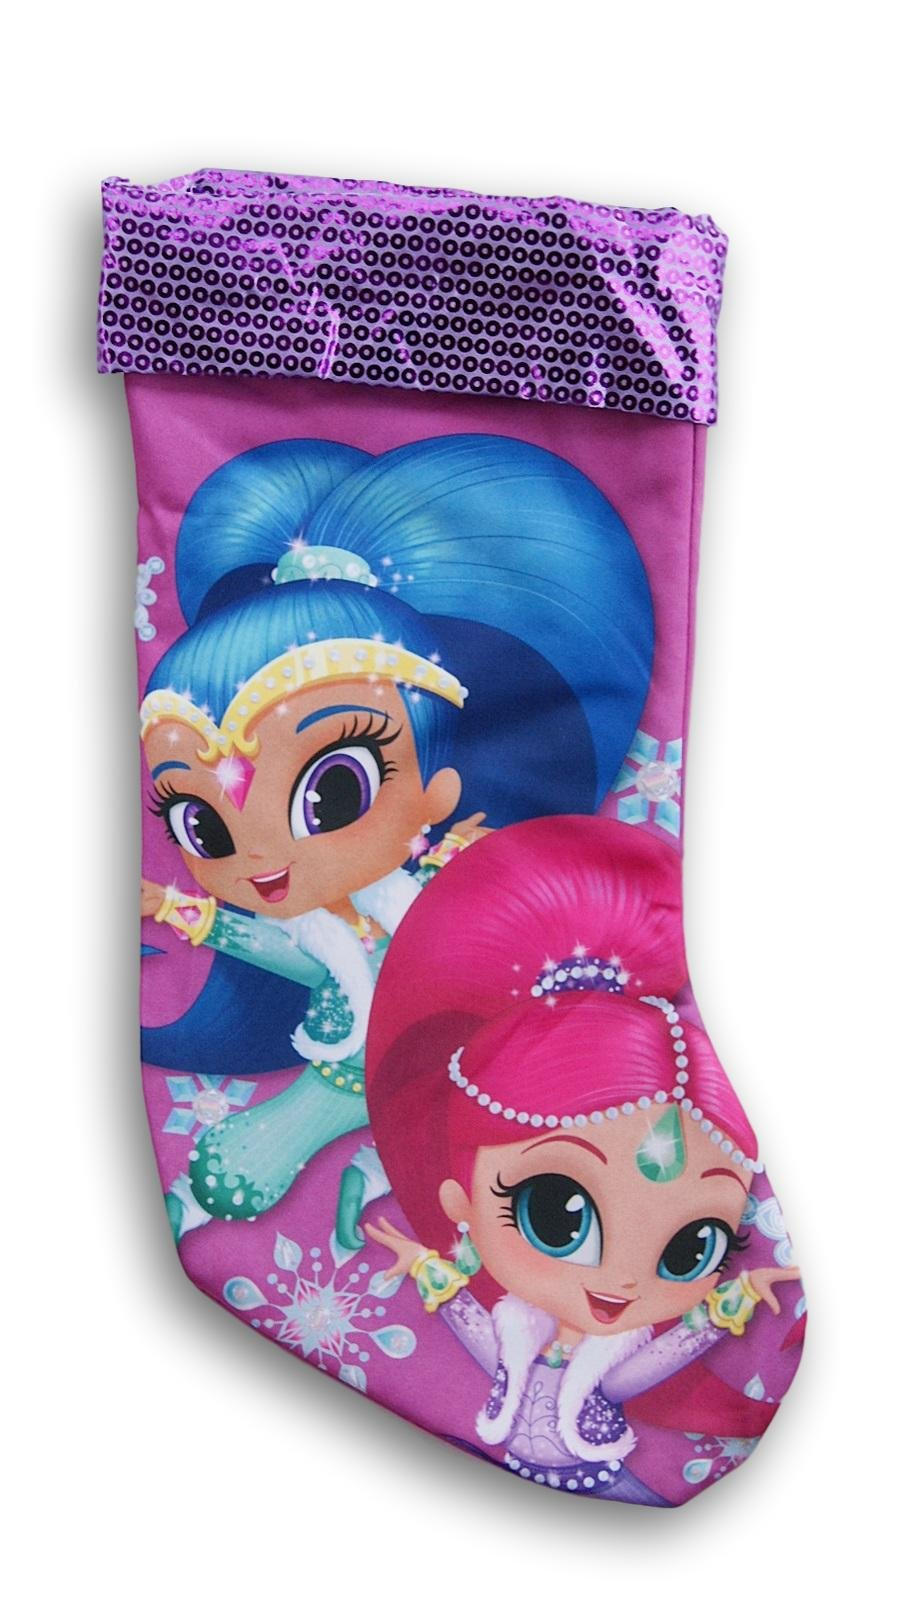 Nickelodeon Purple Shimmer & Shine Holiday Christmas Stocking - 16.5 x 9 Inches